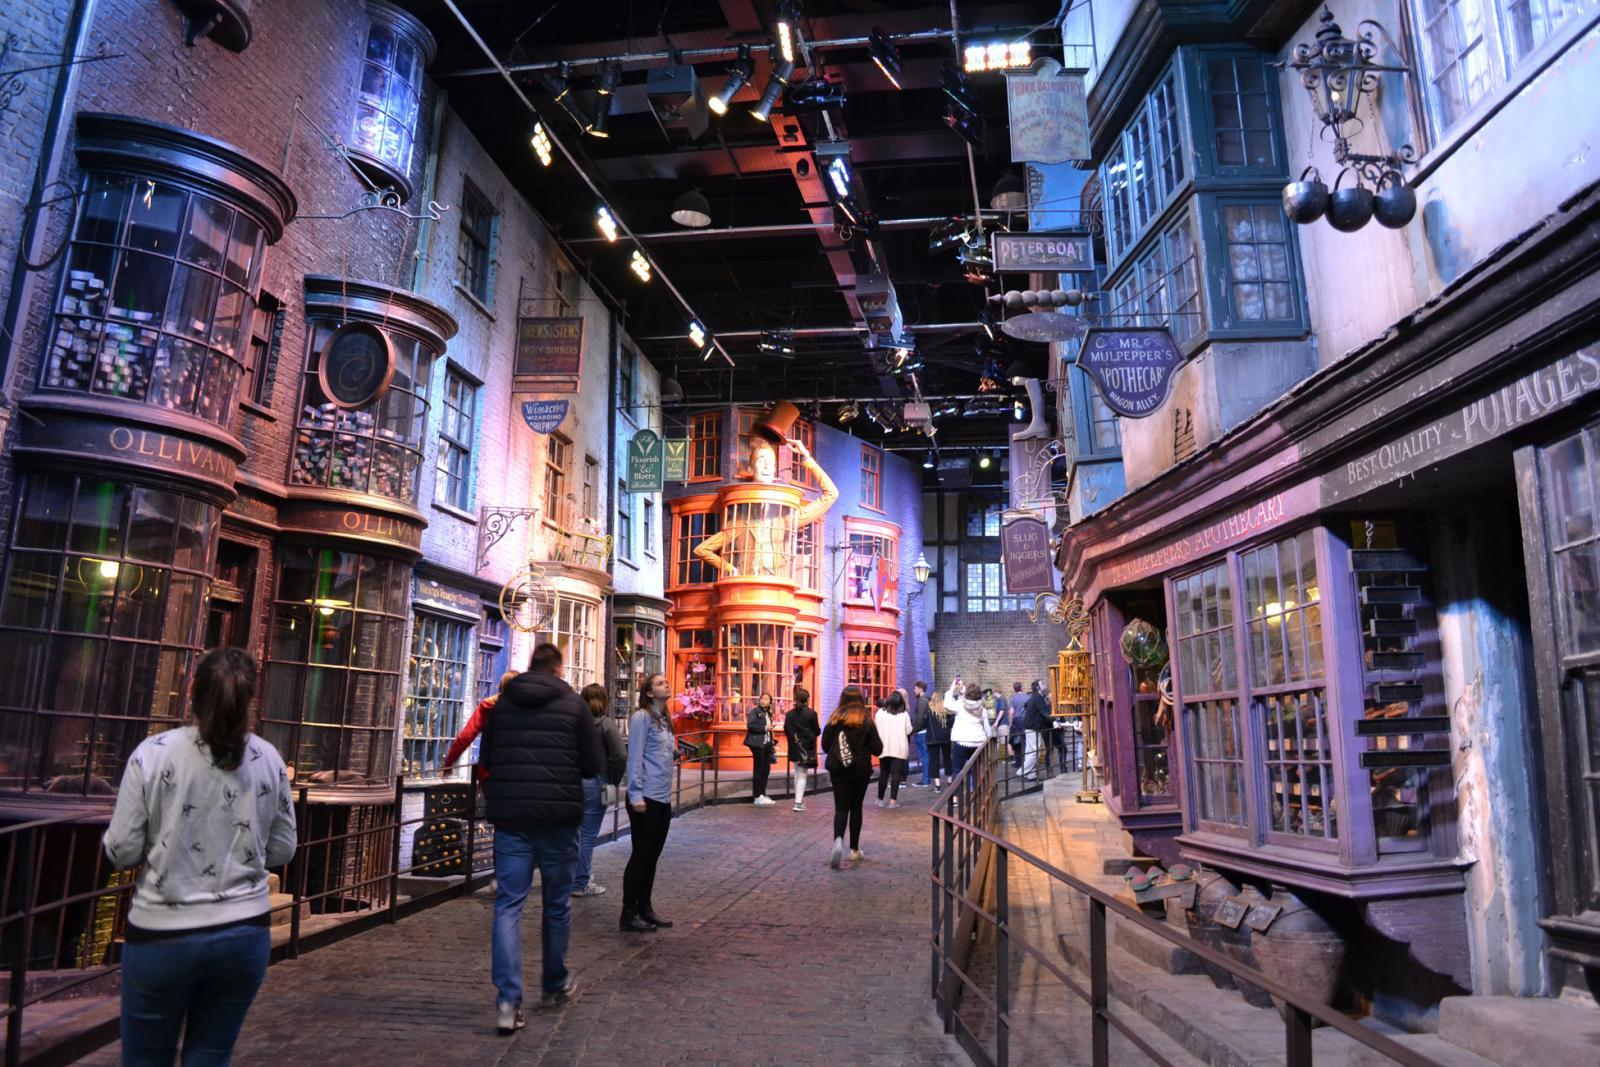 Die Winkelgasse in den Warner Bros. London Studios